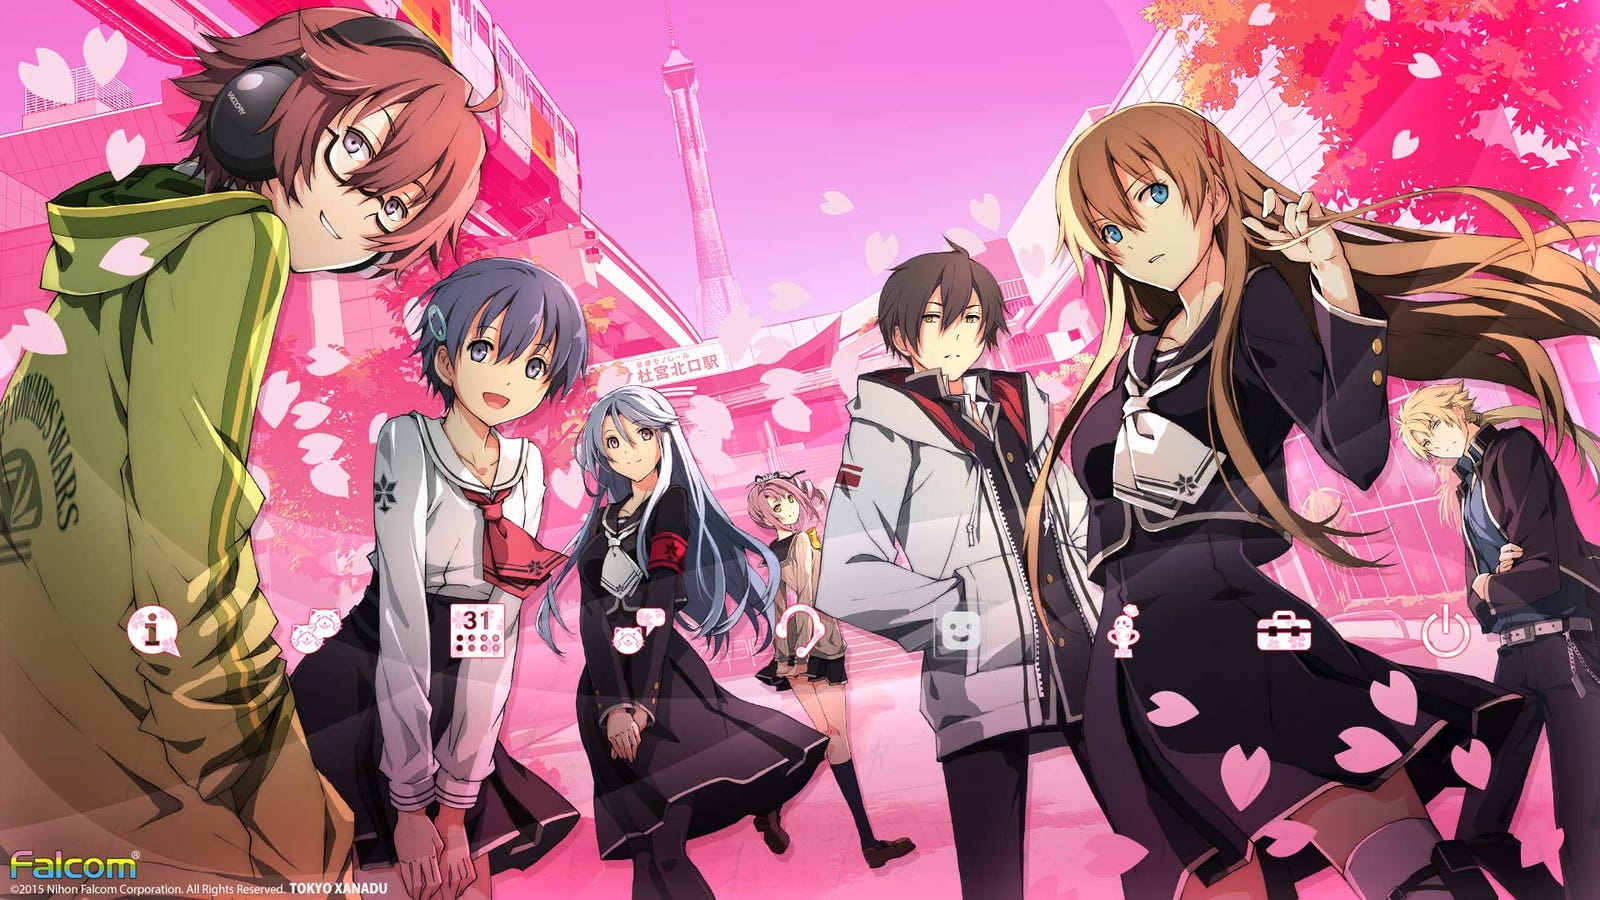 Tokyo Xanadu Confirmed for PSV (Physical) and PC (Steam) in 2017!